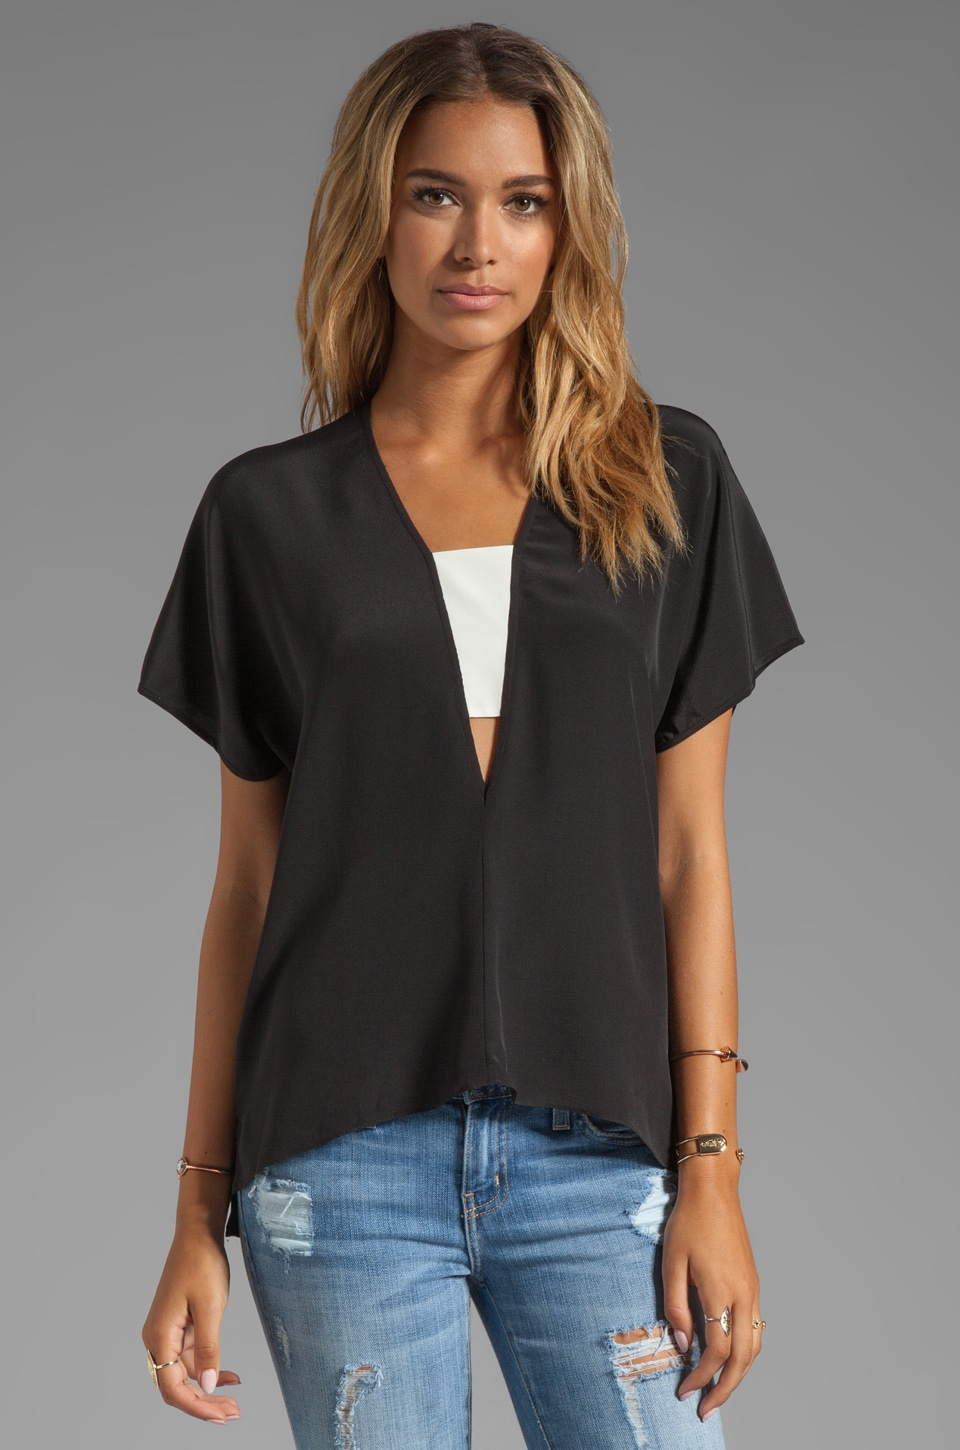 Michelle Mason Contrast Inset V-Neck Top in Black